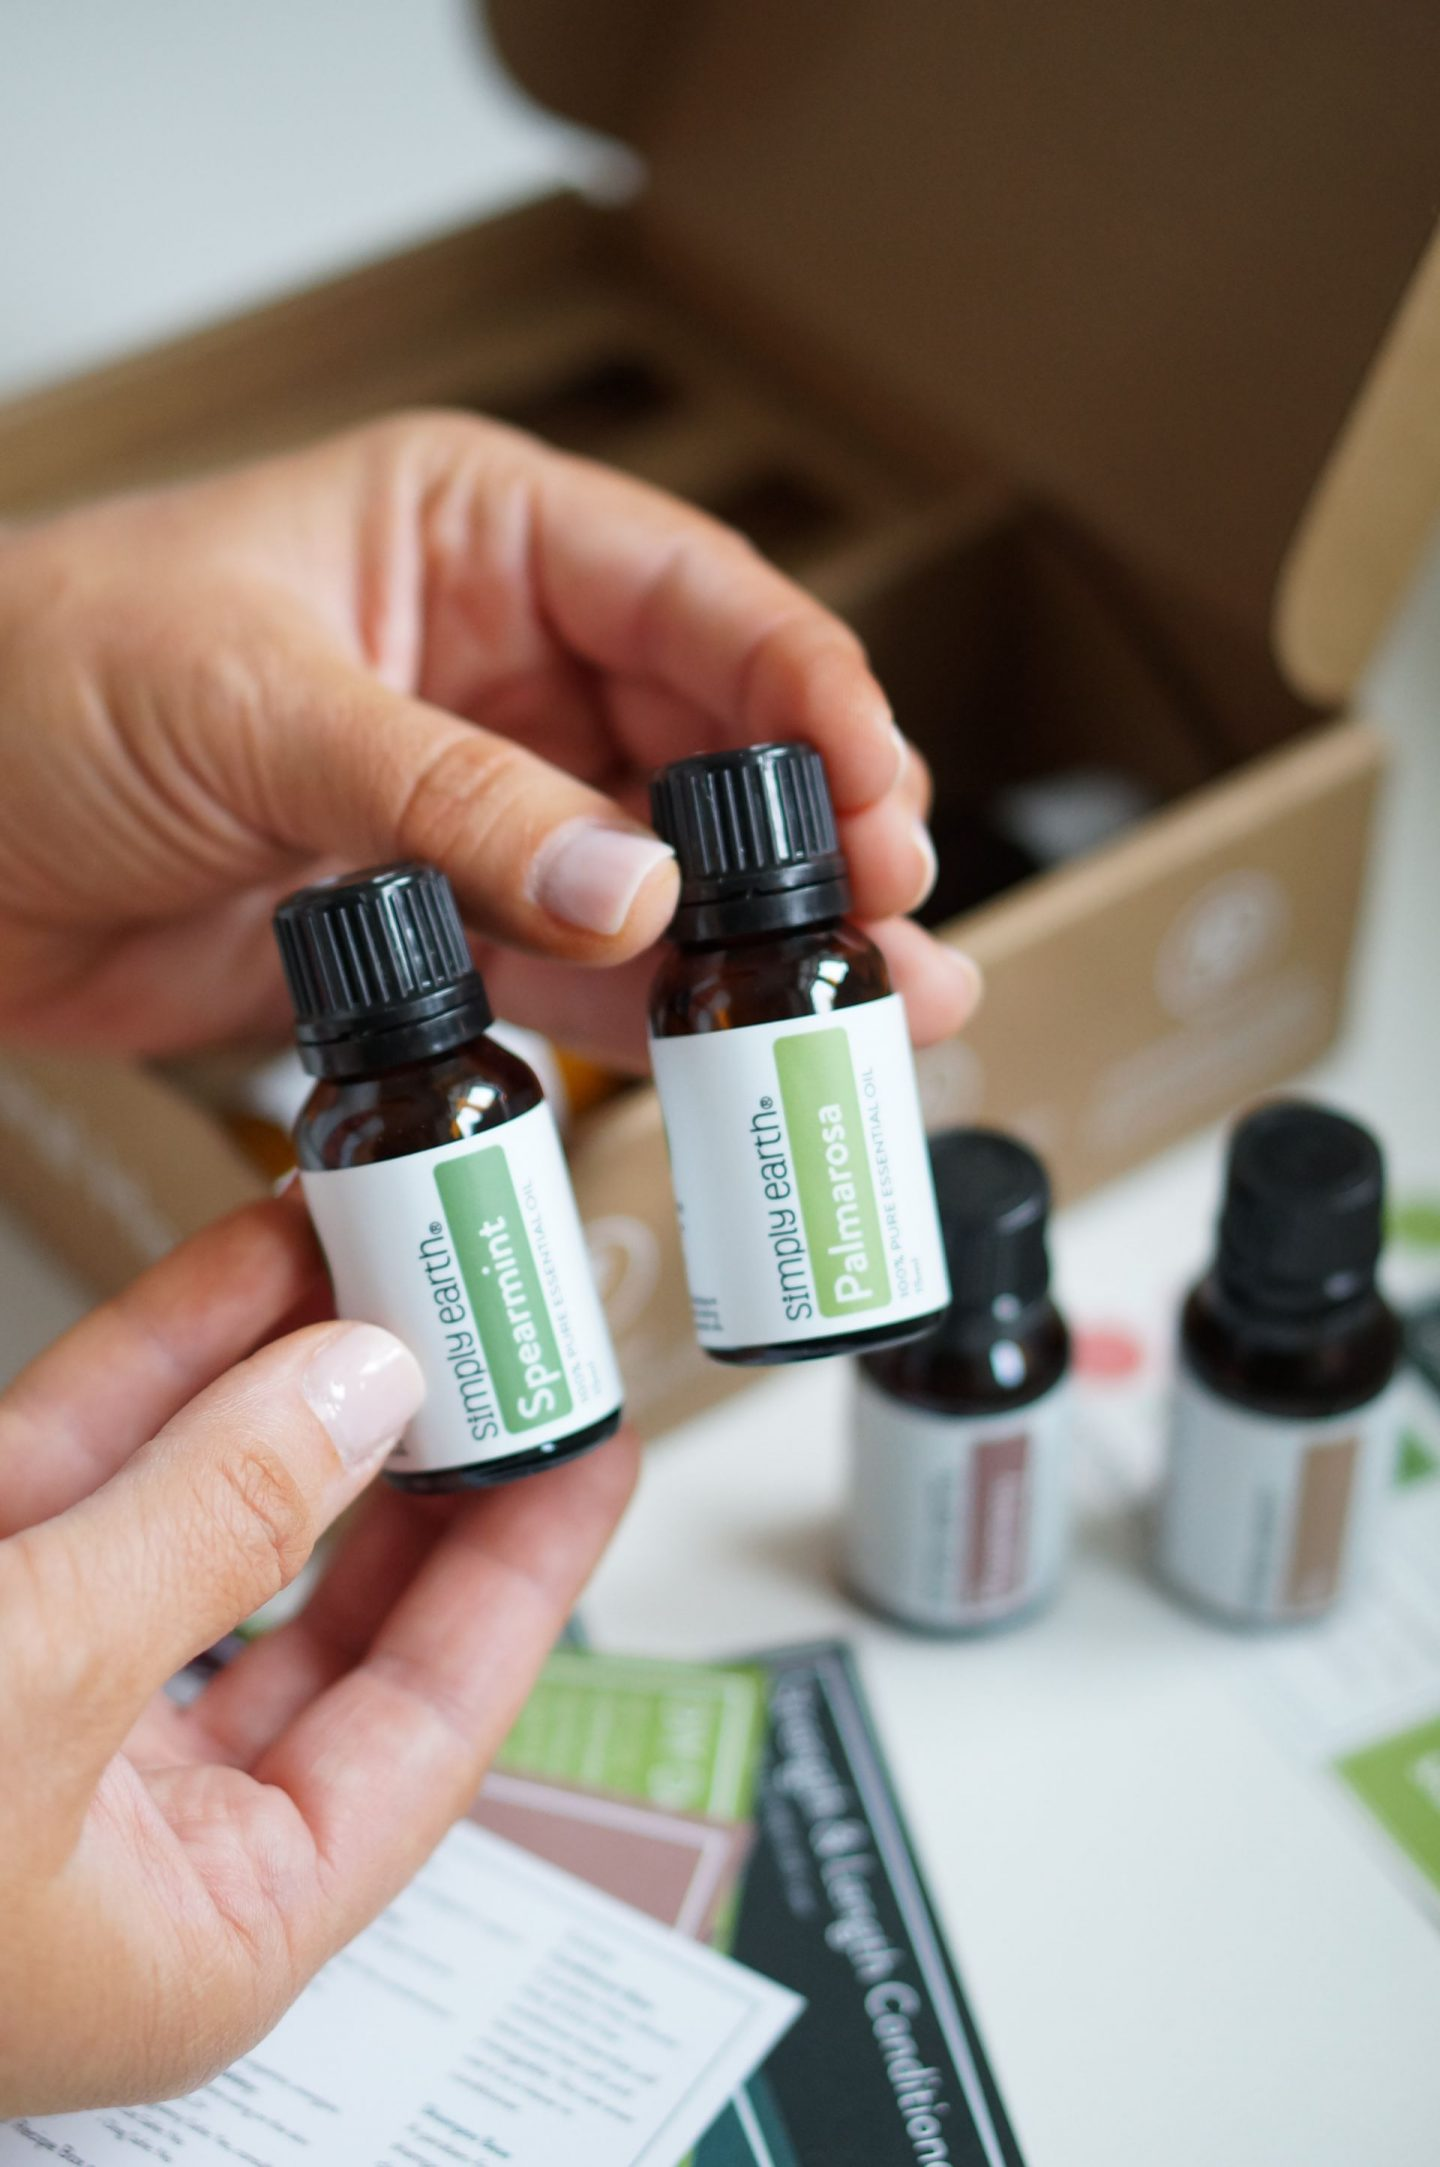 NC blogger Rebecca Lately shares her Simply Earth July 2020 box. Explore this toxin-free essential oil monthly subscription box!